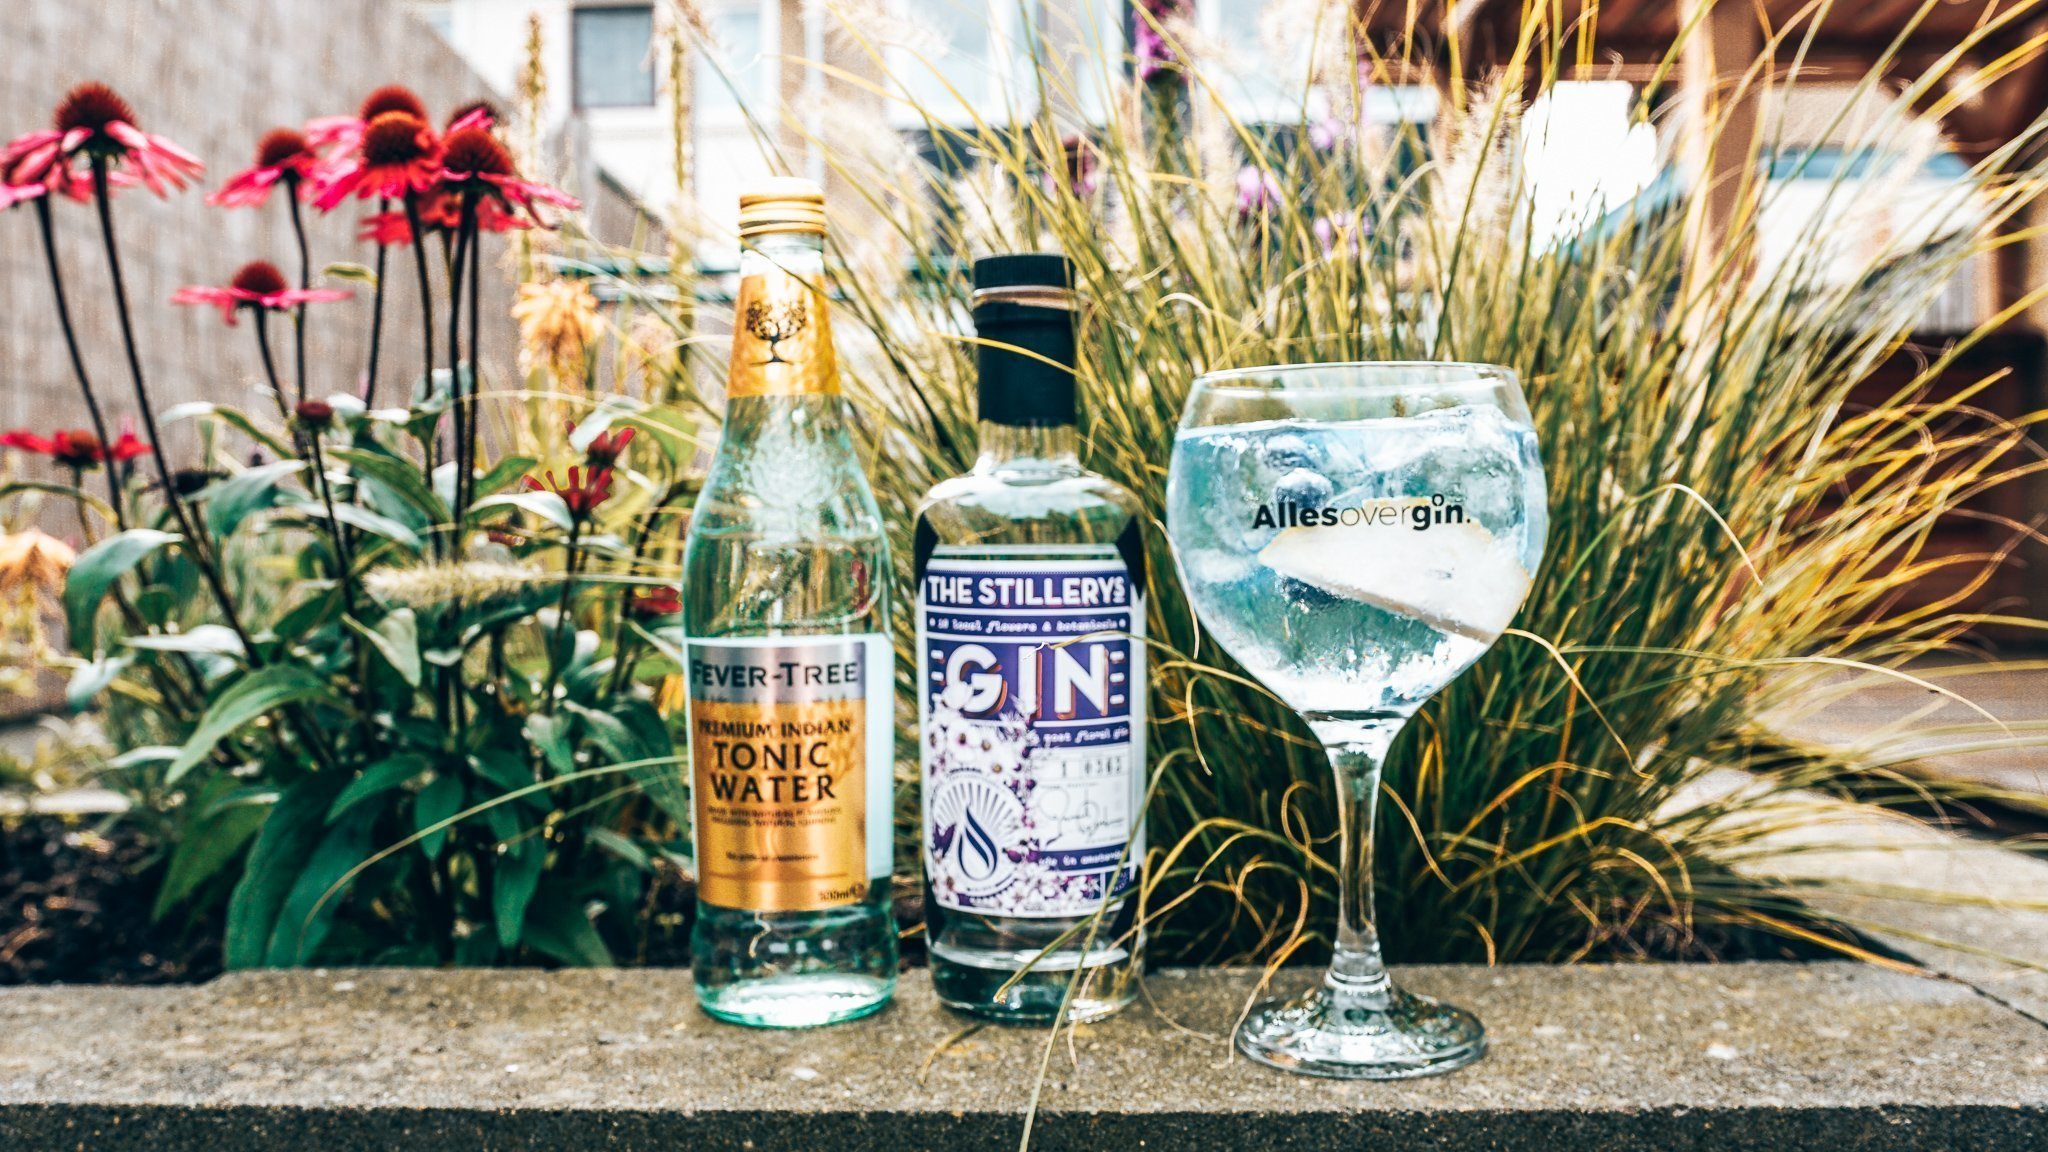 Perfect serve The Stillery's Gin, Alles over gin.